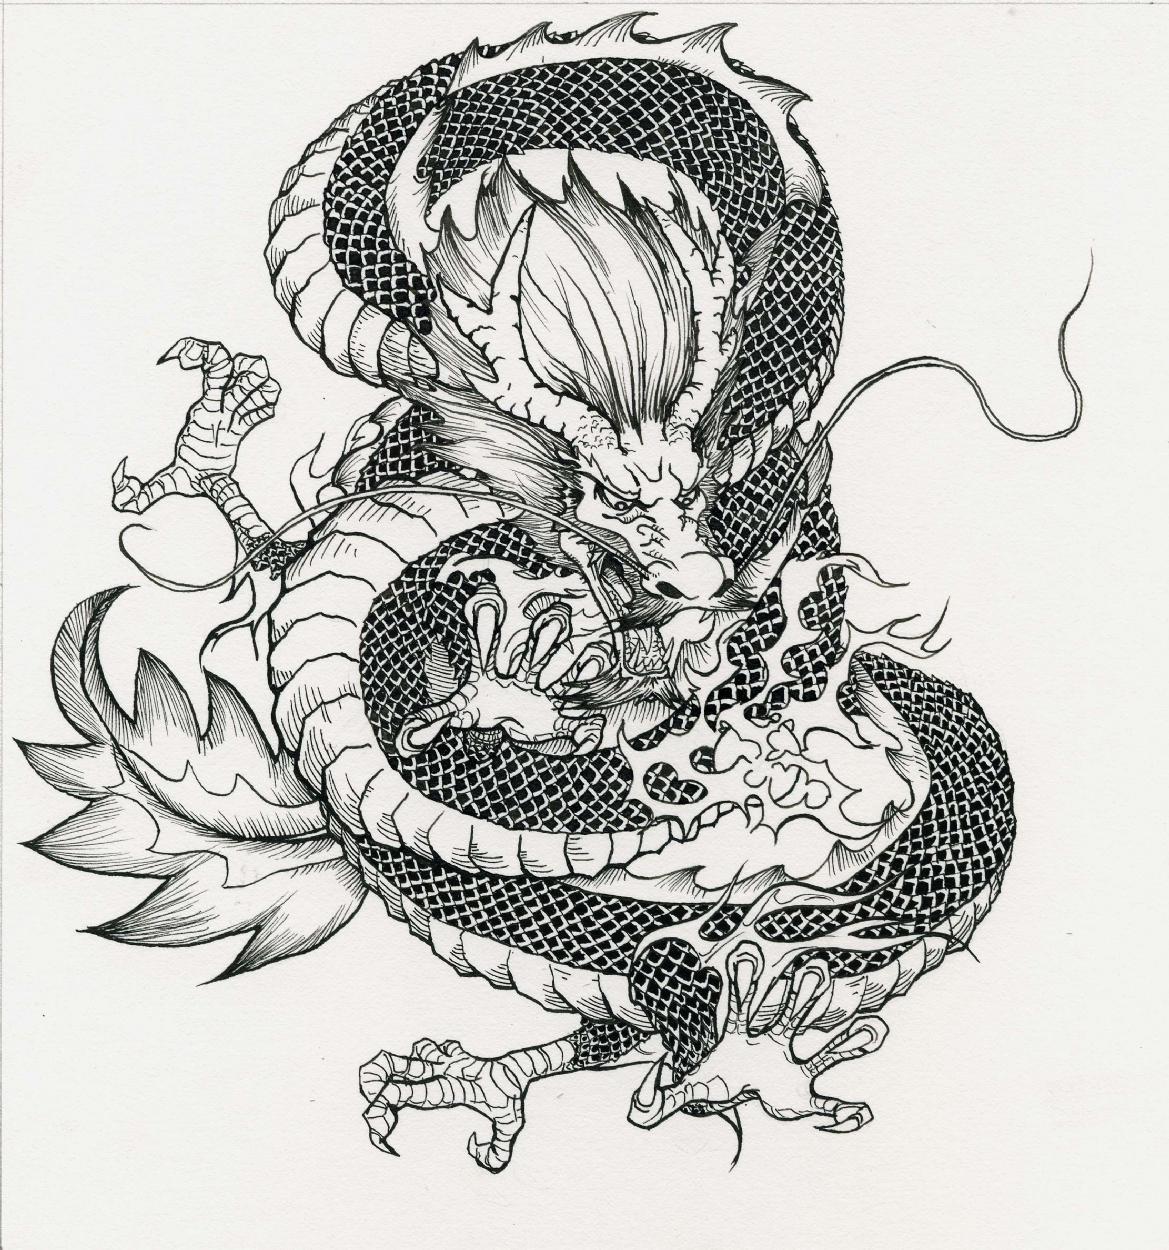 Chinese Dragon, in Raymond Kuang's Personal Art Comic Art